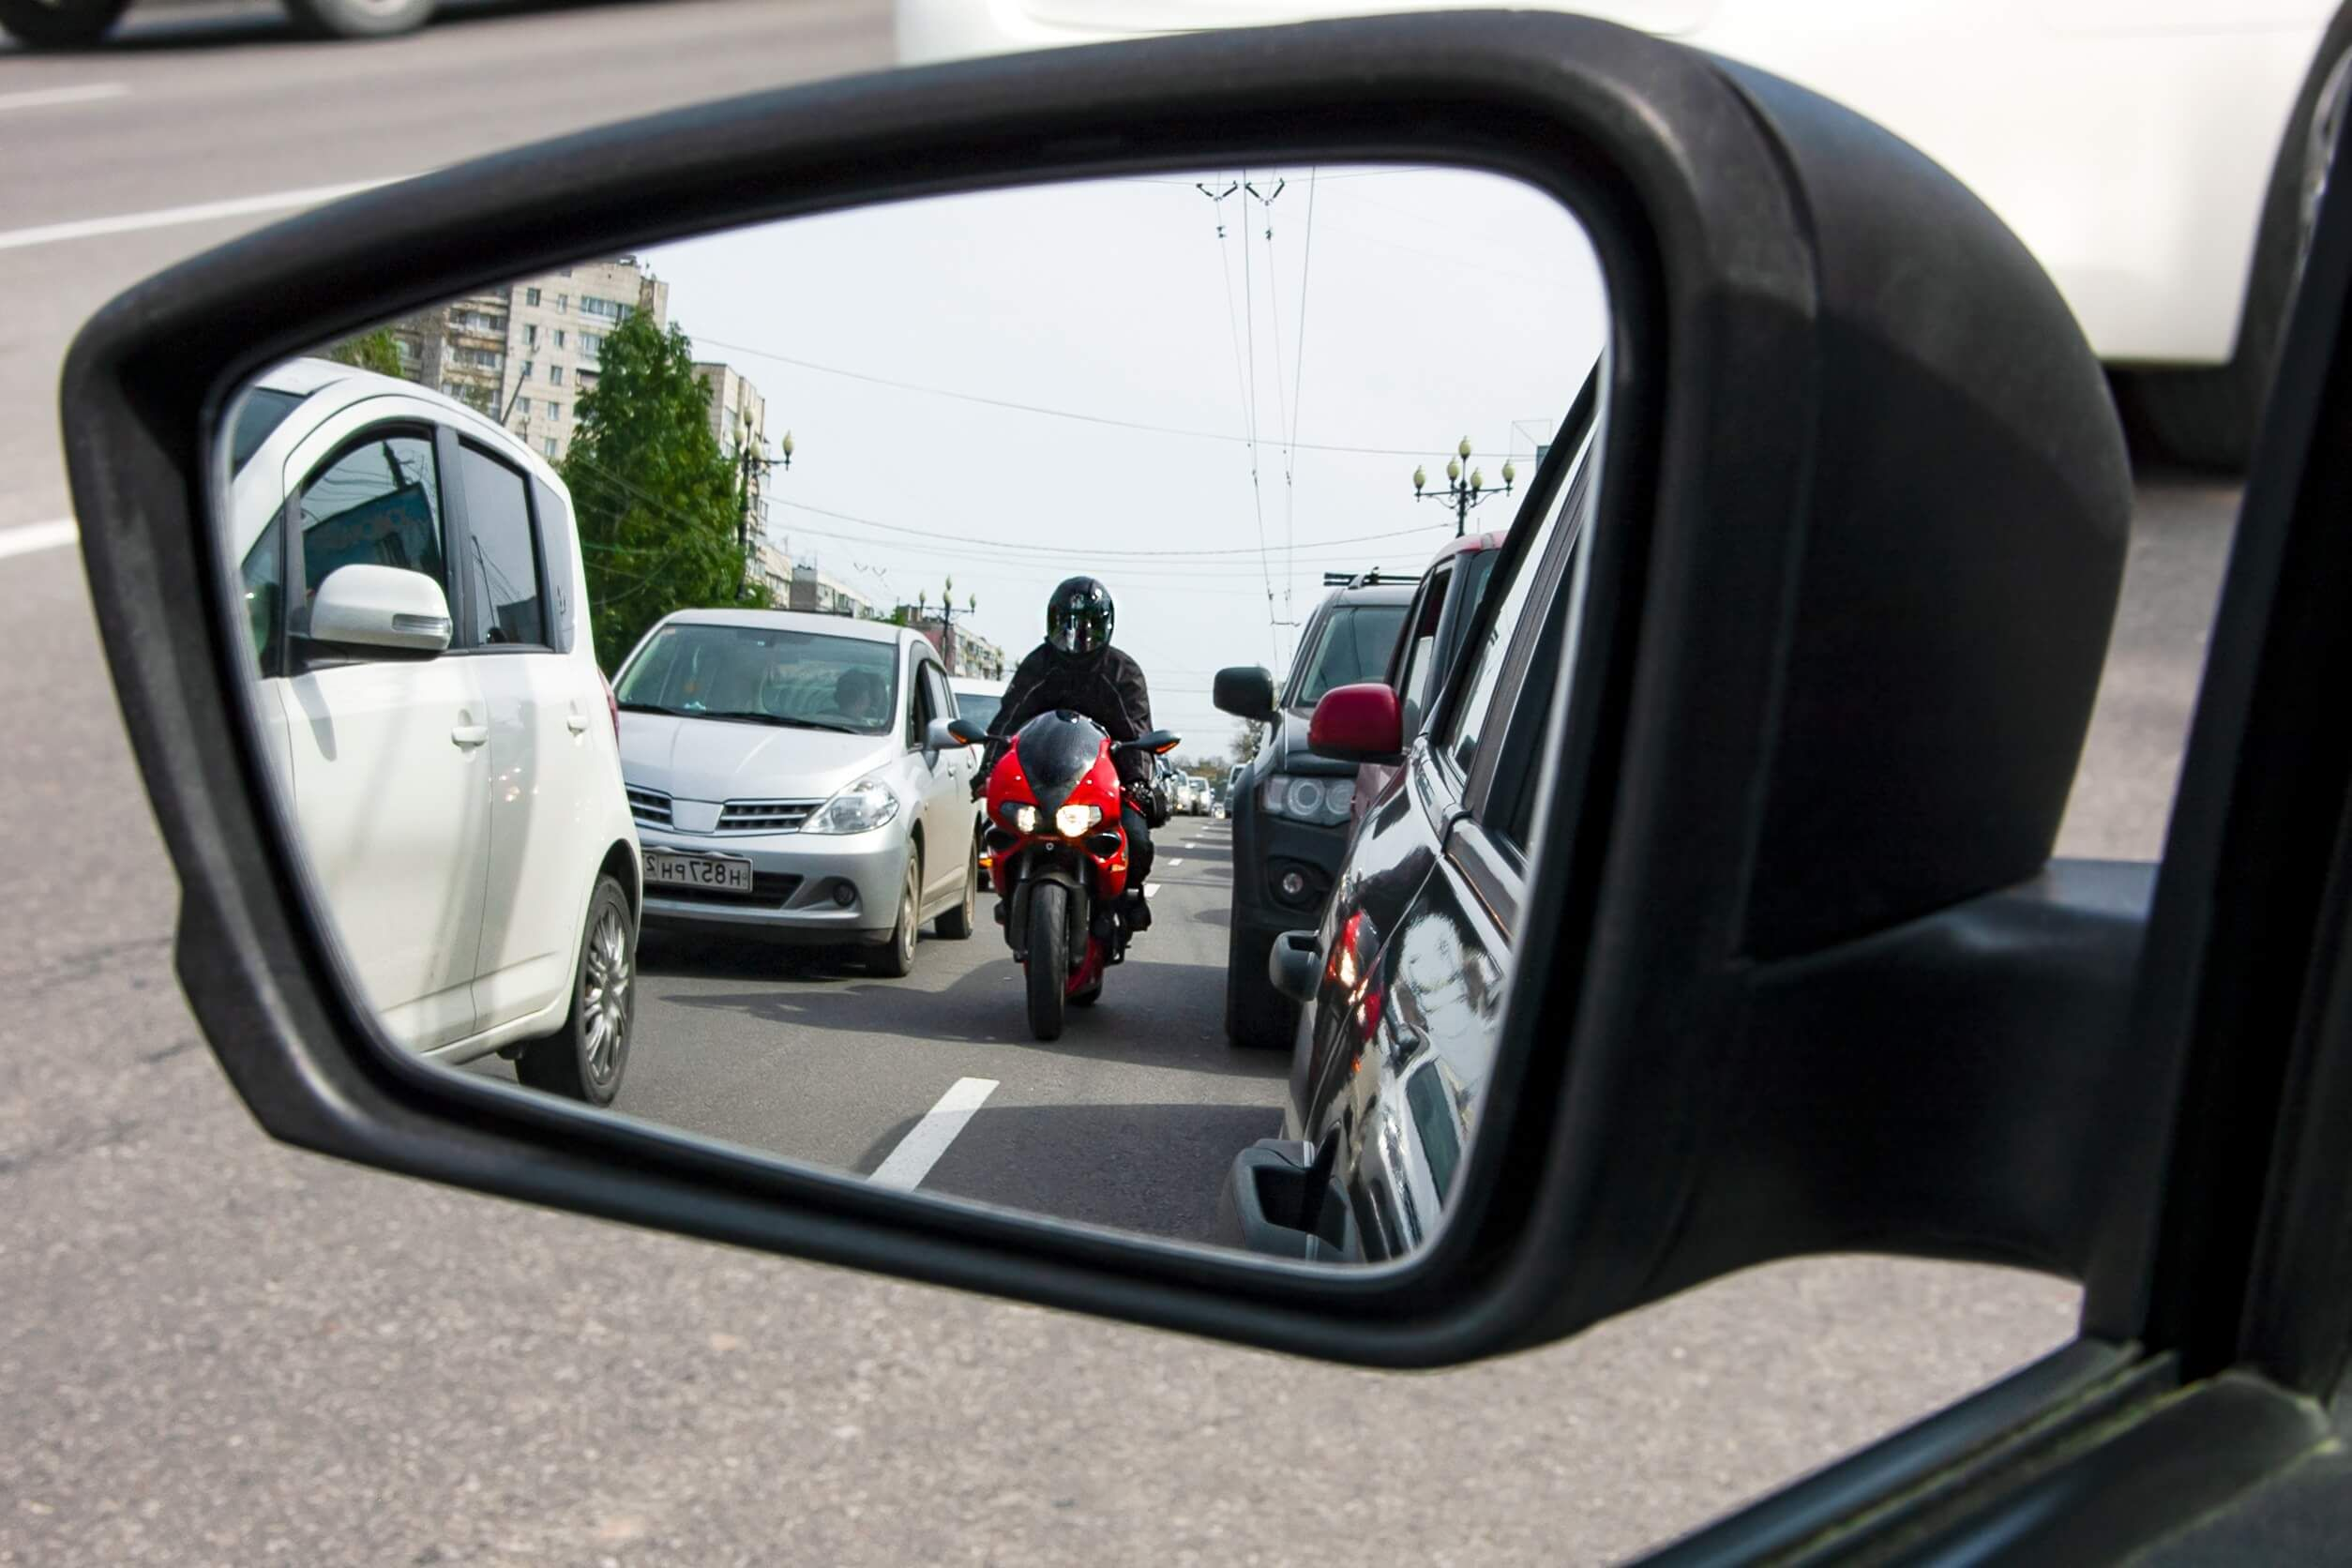 A motorcycle lane splitting and about to cause an accident.